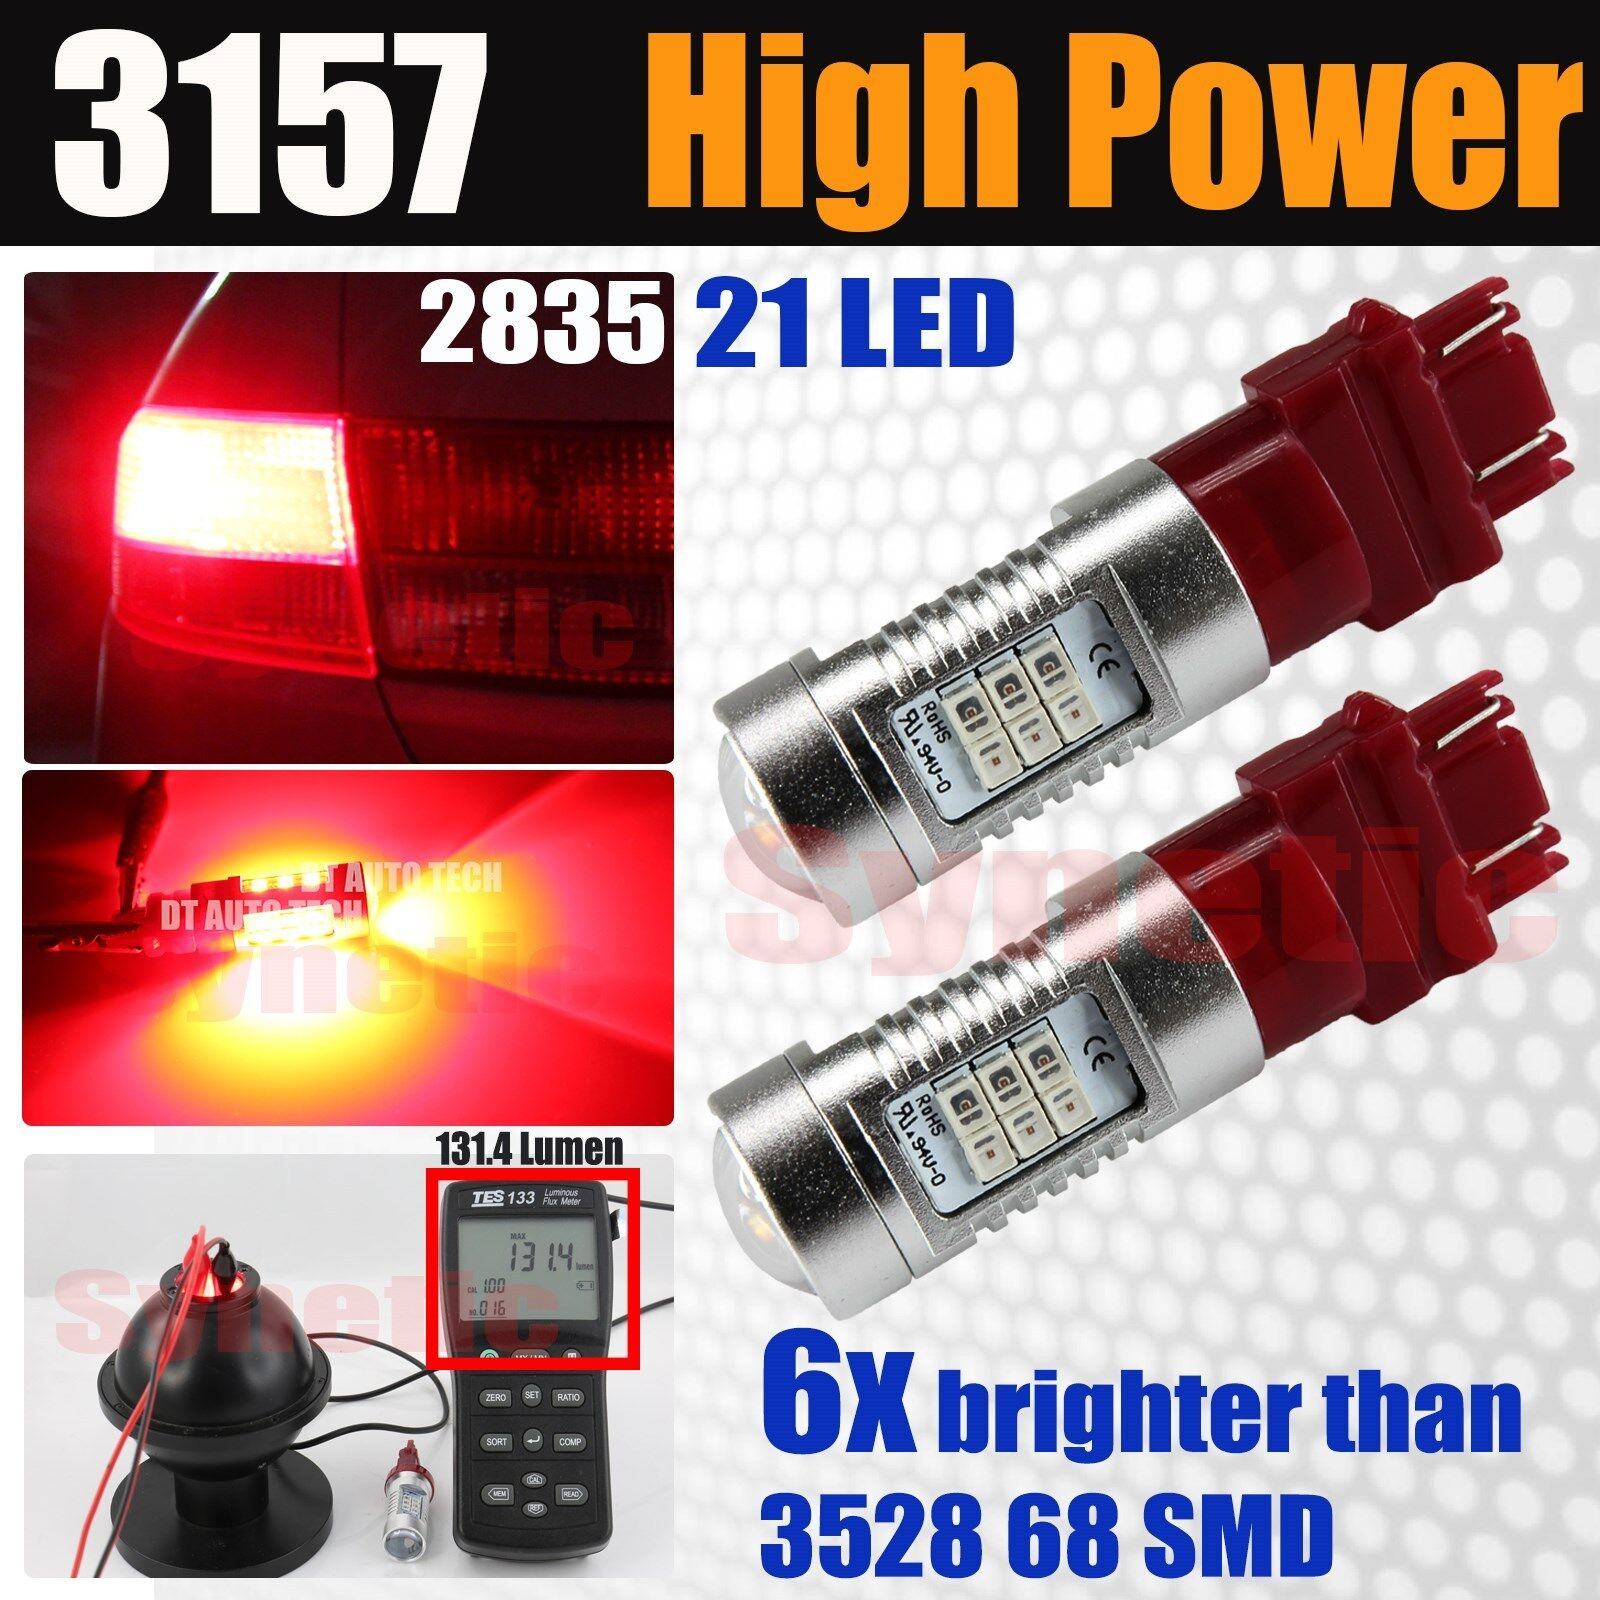 2x 7443 7440AL High Power 15-SMD Bright Red Brake Tail Stop LED Lamp Light Bulbs